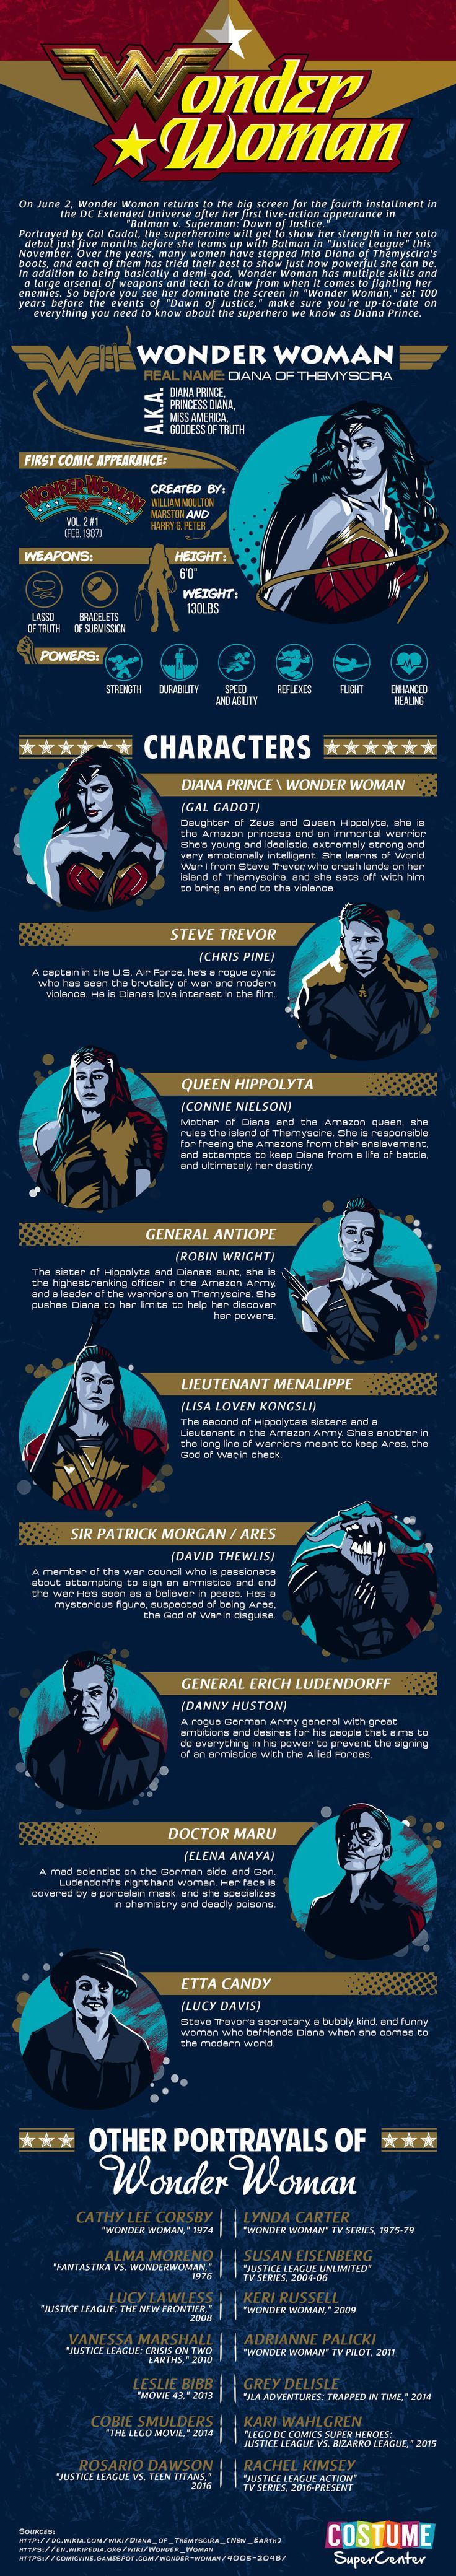 This June, #WonderWoman is coming to theaters to blow away the DC Comics Universe with her own solo movie! Follow Diana Prince as she takes down Ares, the God of War, and check out this cool infographic from Costume SuperCenter to learn what you can about the movie! - Visit to grab an amazing super hero shirt now on sale!